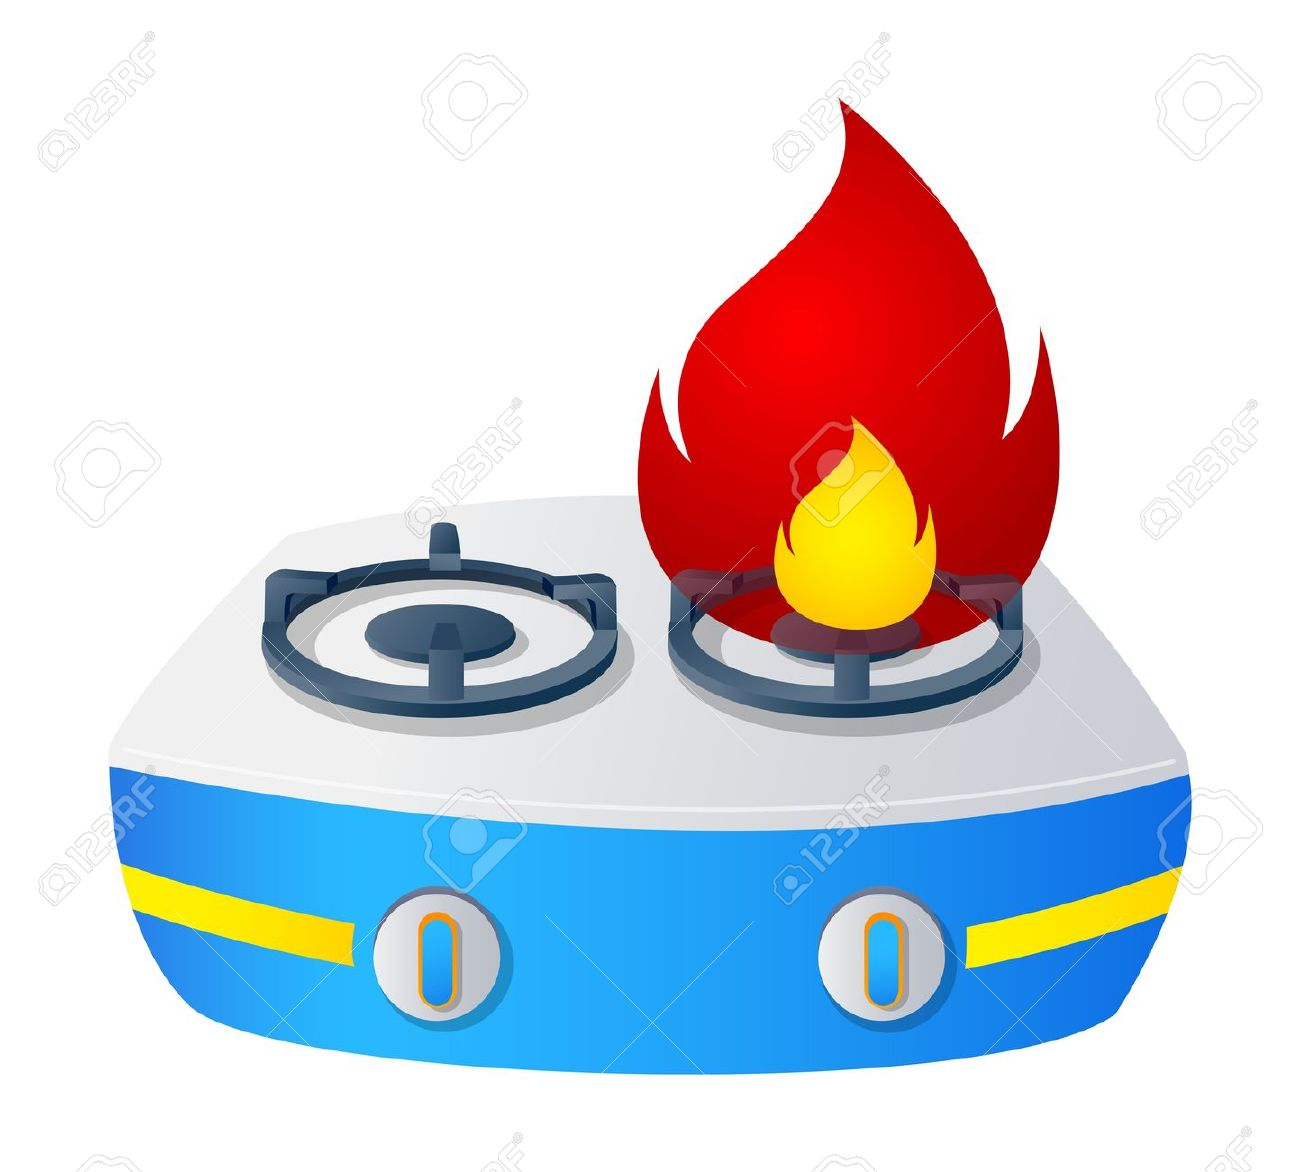 Gas Cooker clipart bake oven Cliparts Clipart Fire Stove Stove